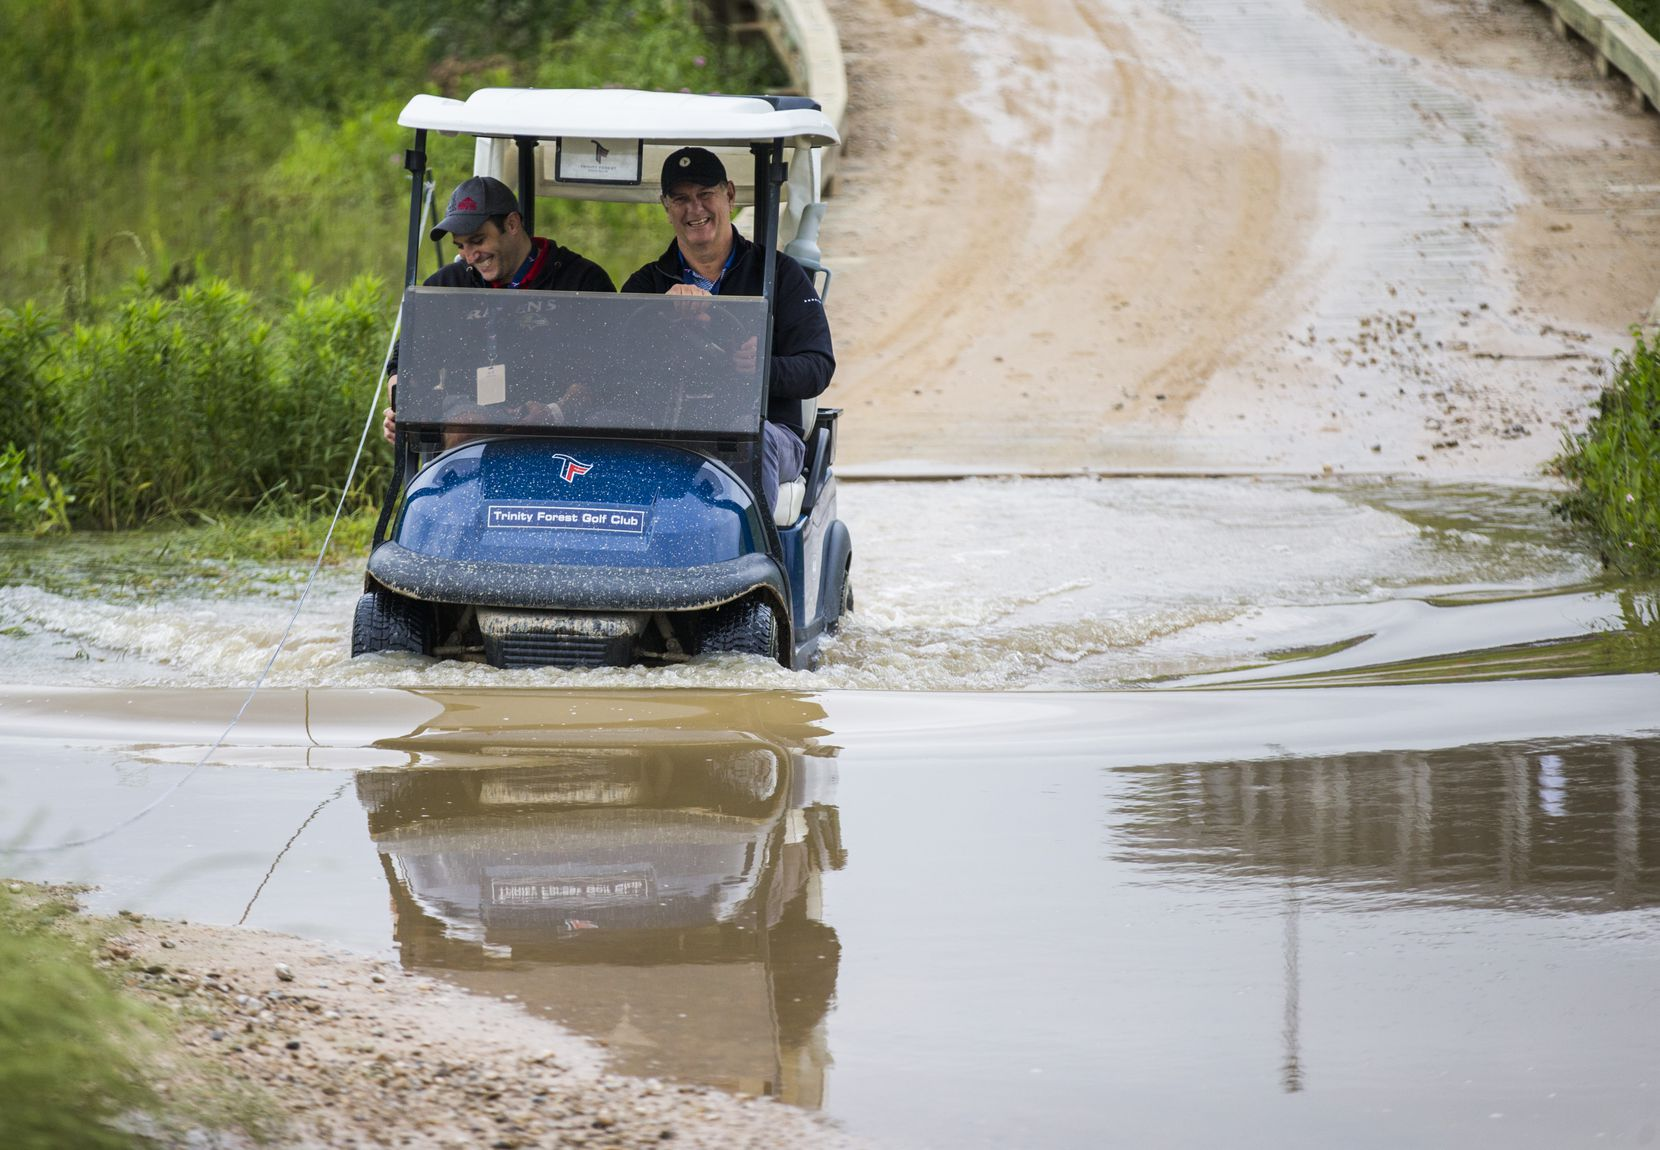 Mayor Mike Rawlings drives a golf cart through a large puddle near hole 12 during round 3 of the AT&T Byron Nelson golf tournament on Saturday, May 11, 2019 at Trinity Forest Golf Club in Dallas. (